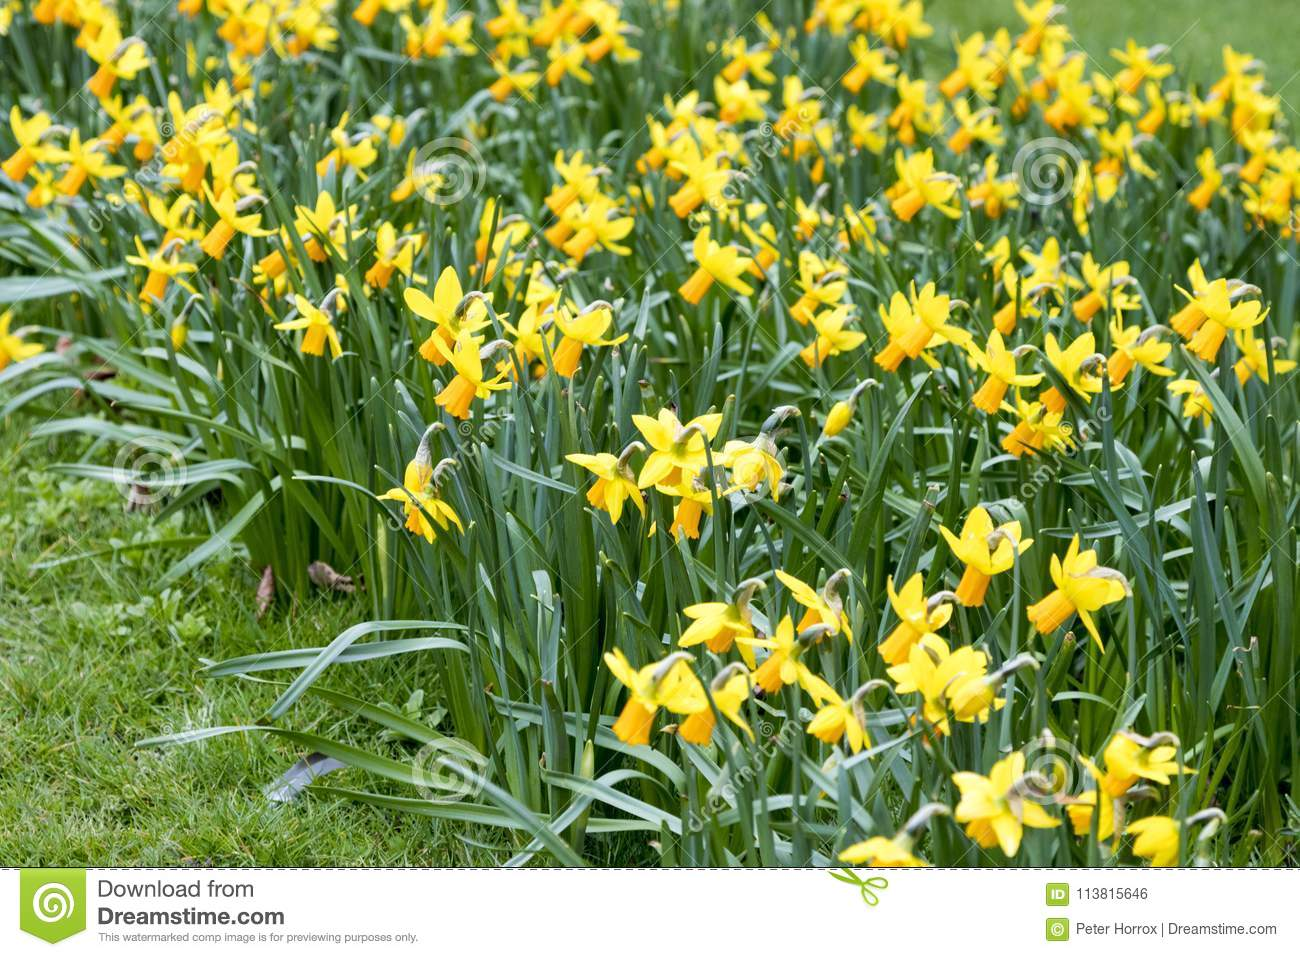 how to grow daffodils outside